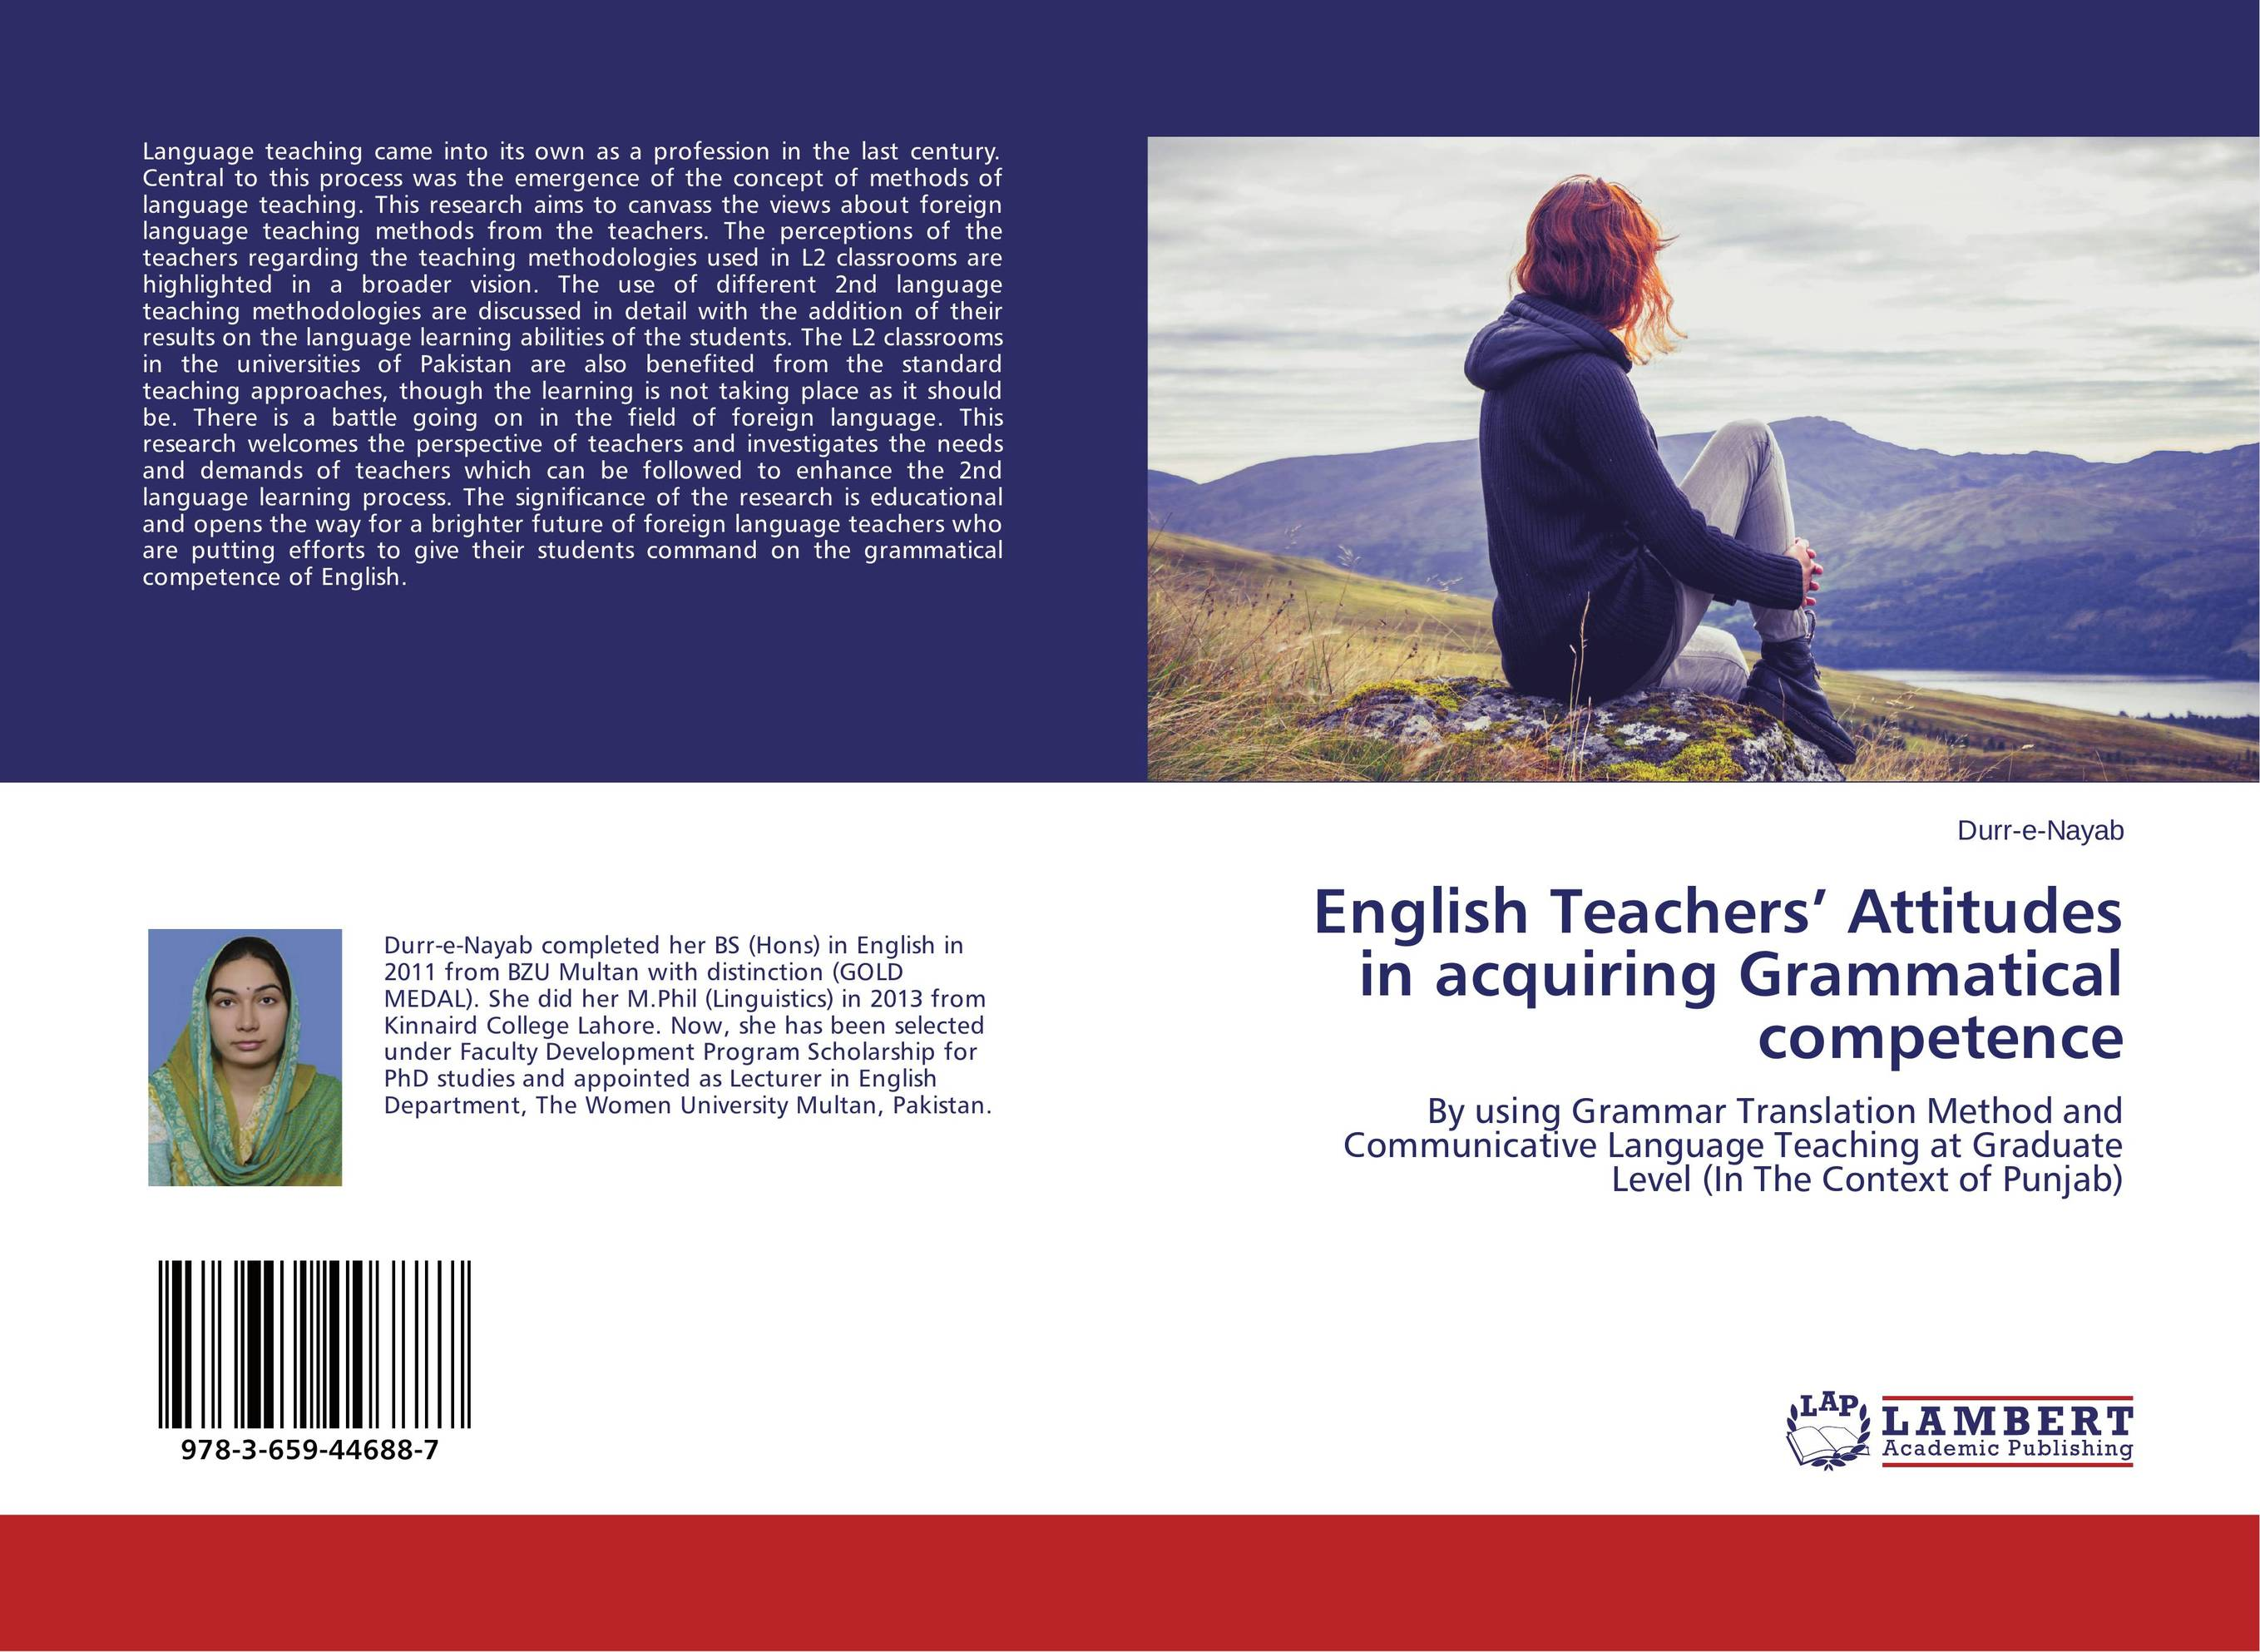 English Teachers' Attitudes in acquiring Grammatical competence standard spanish english and scientific names of the amphibians and reptiles of mexico